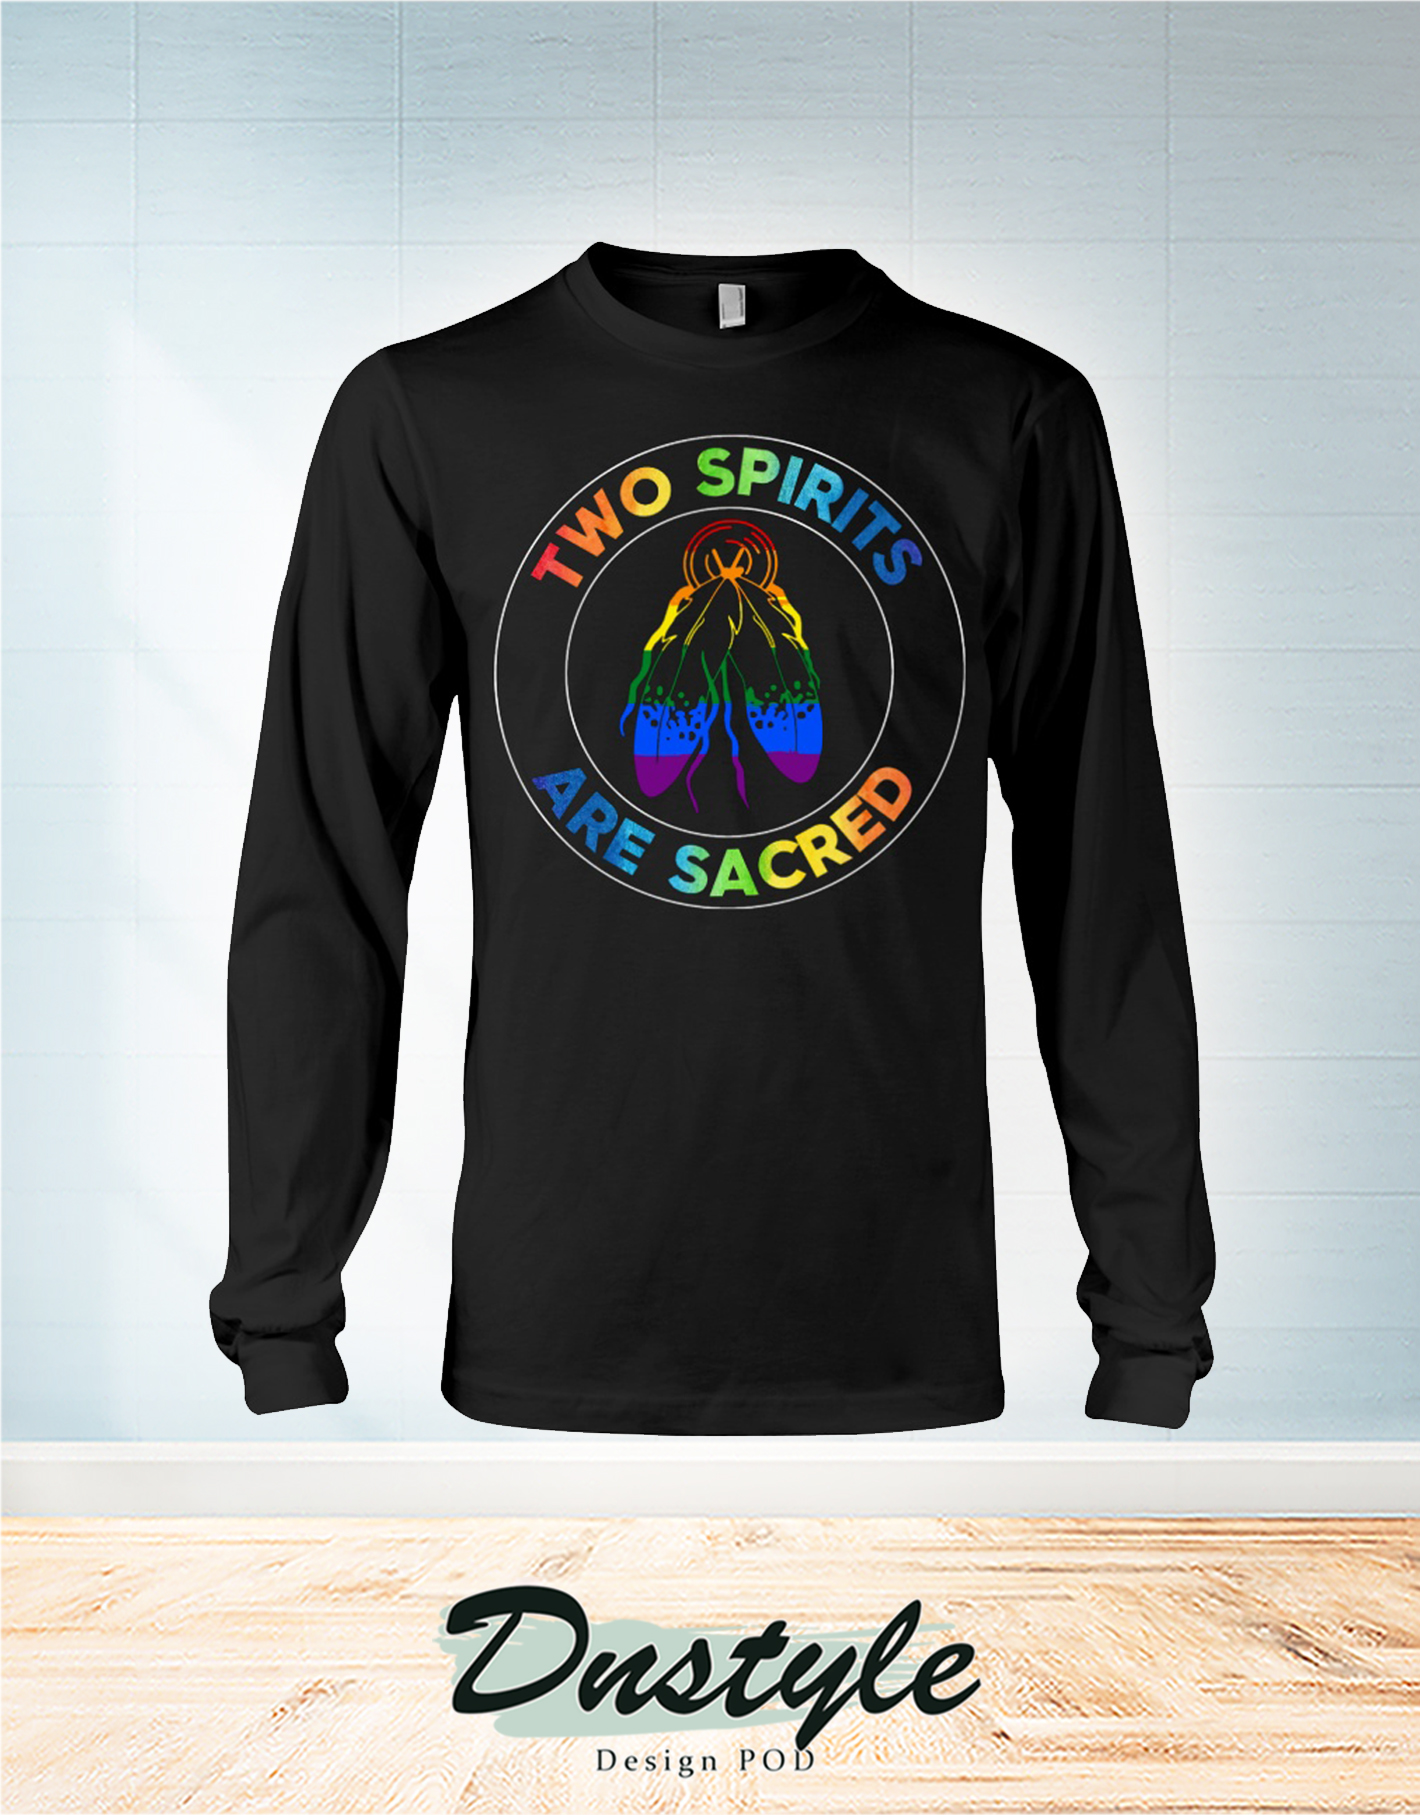 American native two spirits are sacred long sleeve